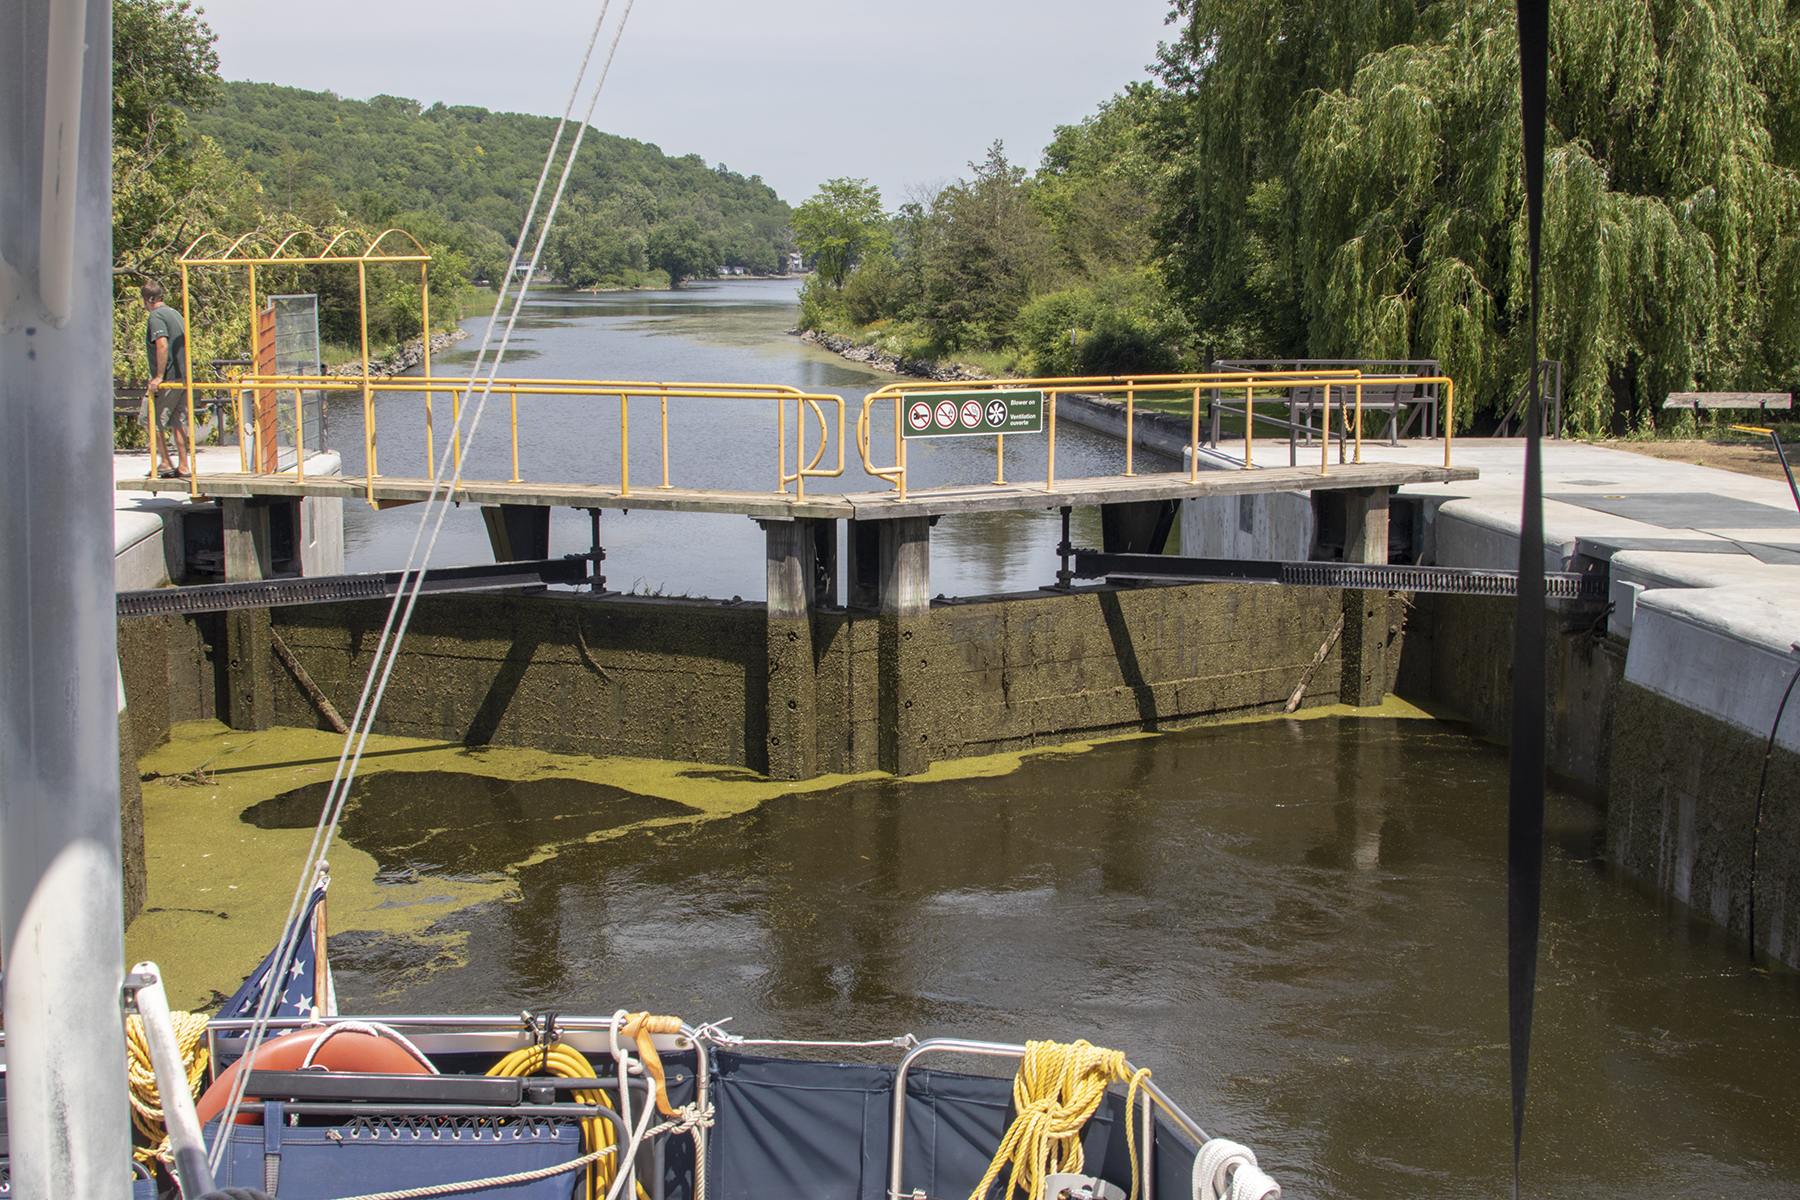 In the lock from whence we came